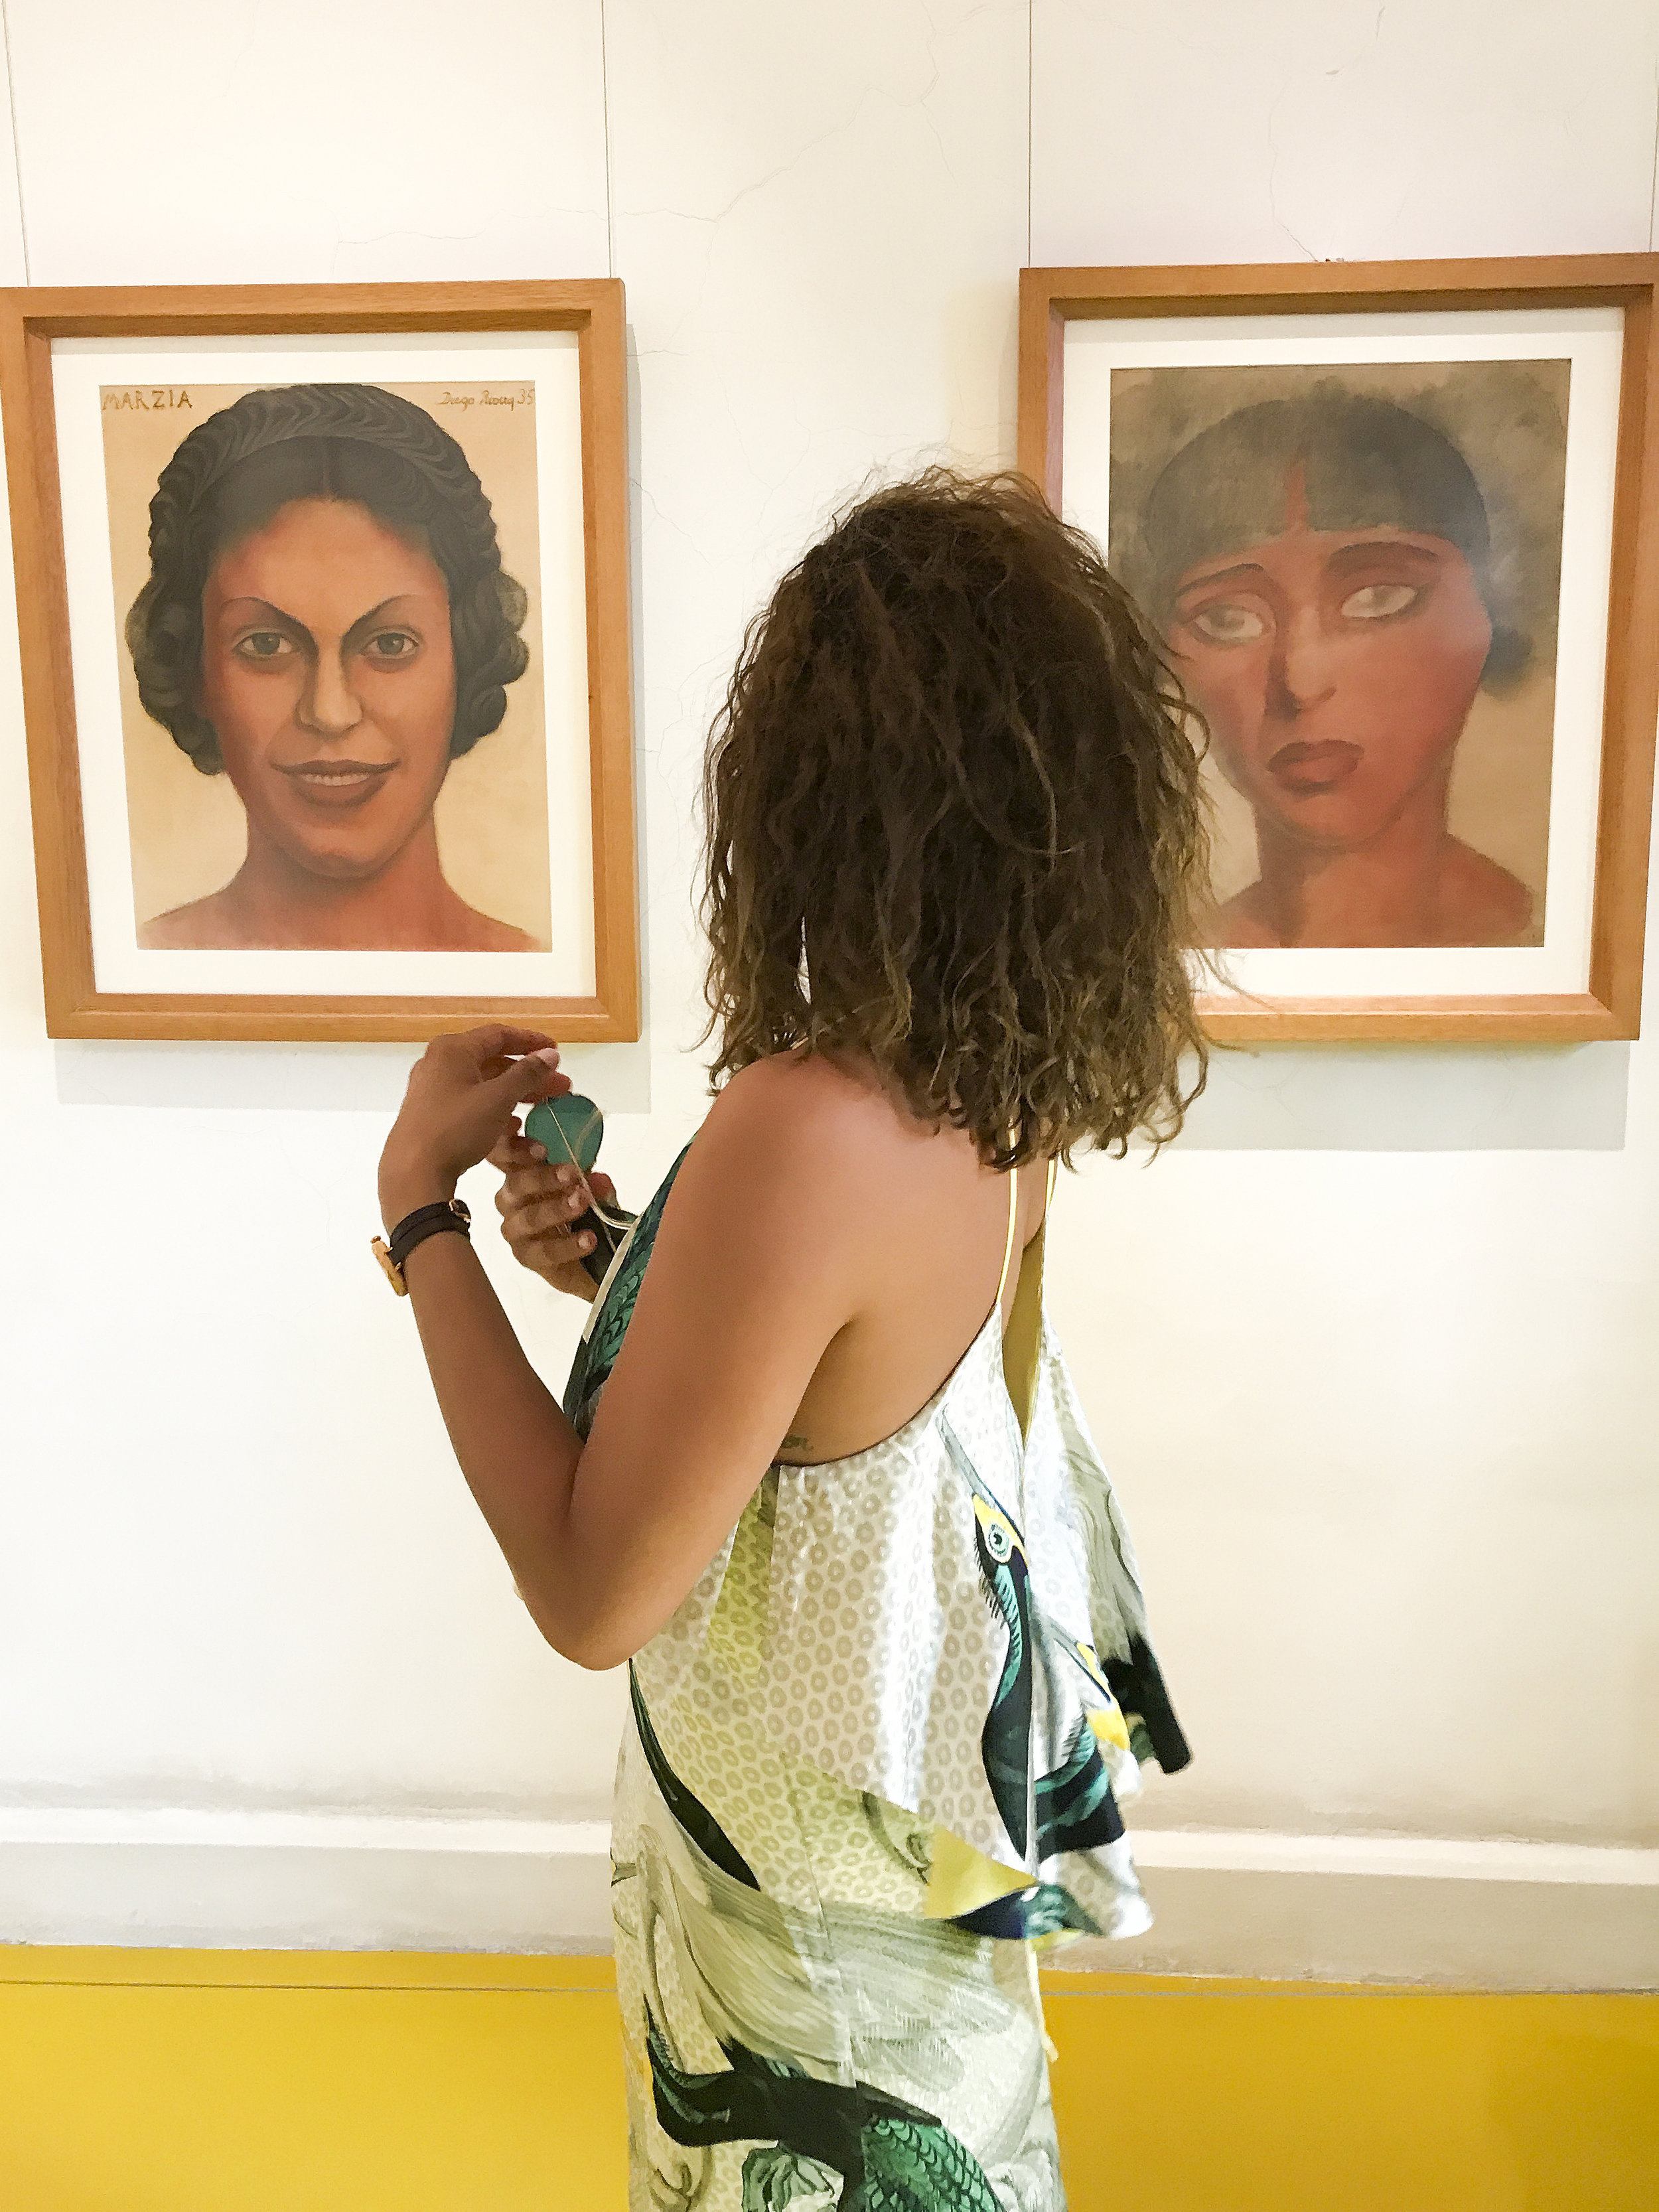 """Portraits by Diego Rivera in 1935 of """"Marzia"""" and """"Carmen"""""""